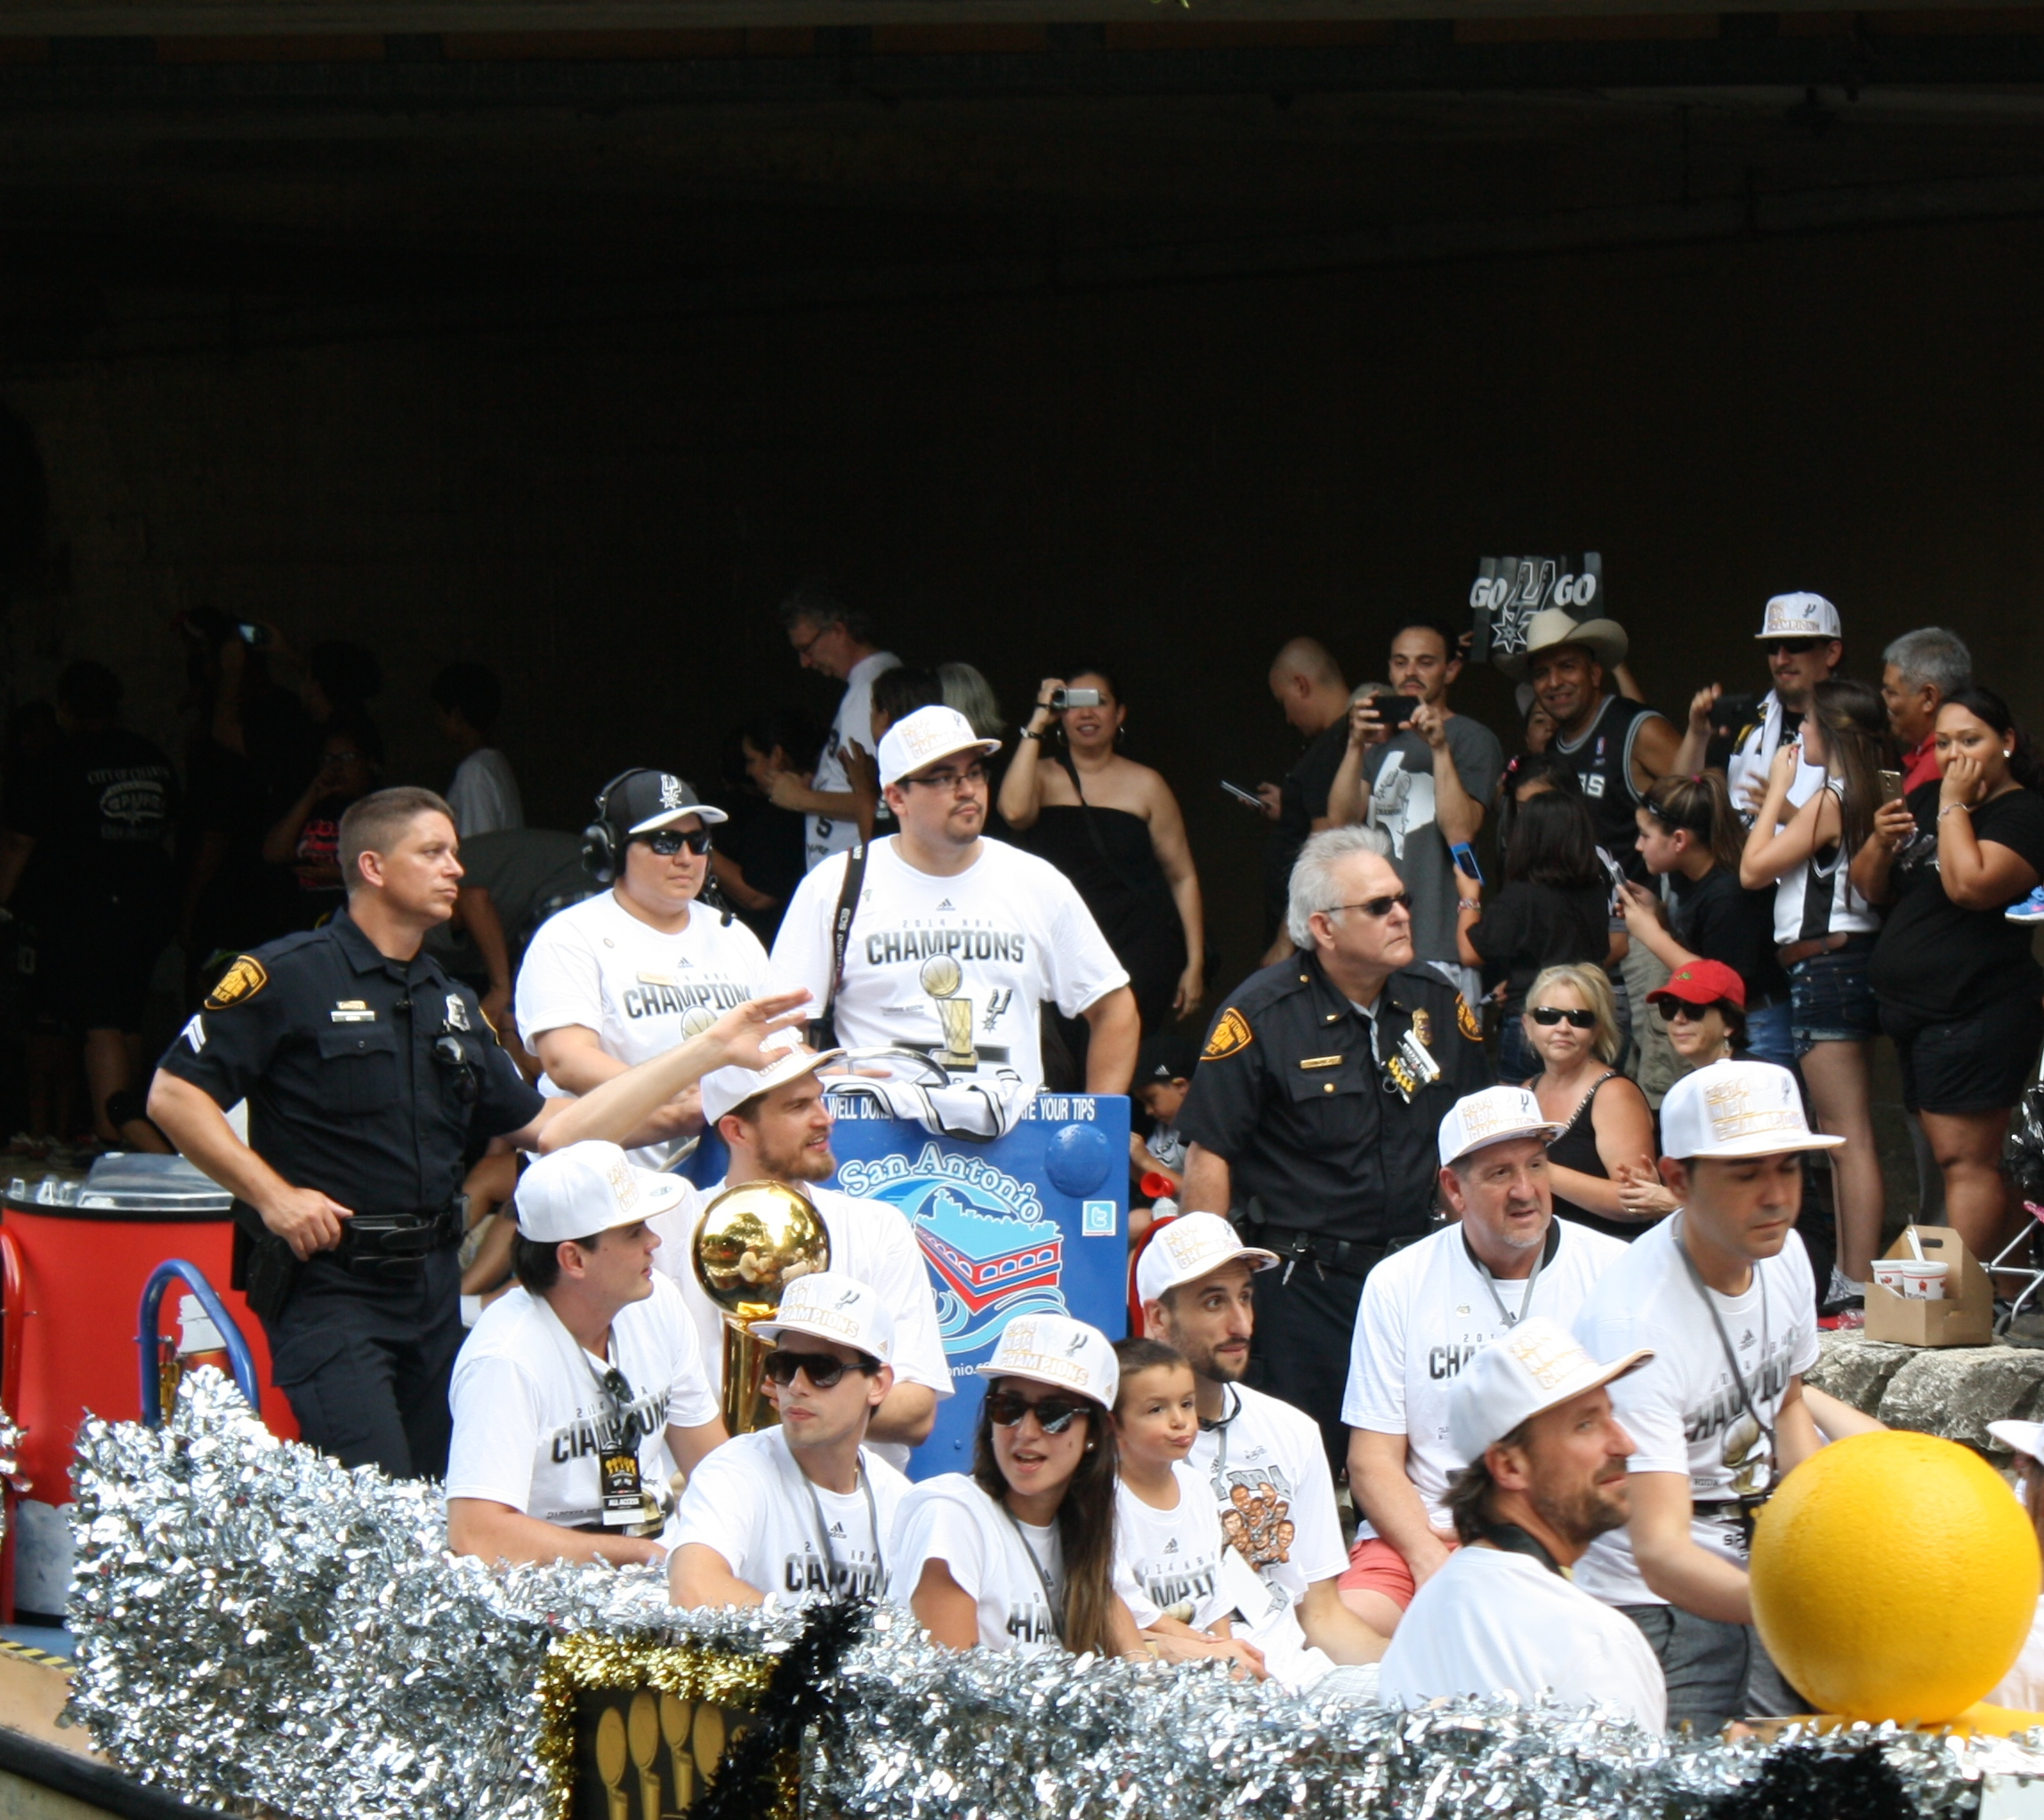 tiago splitter and manu ginobili river parade